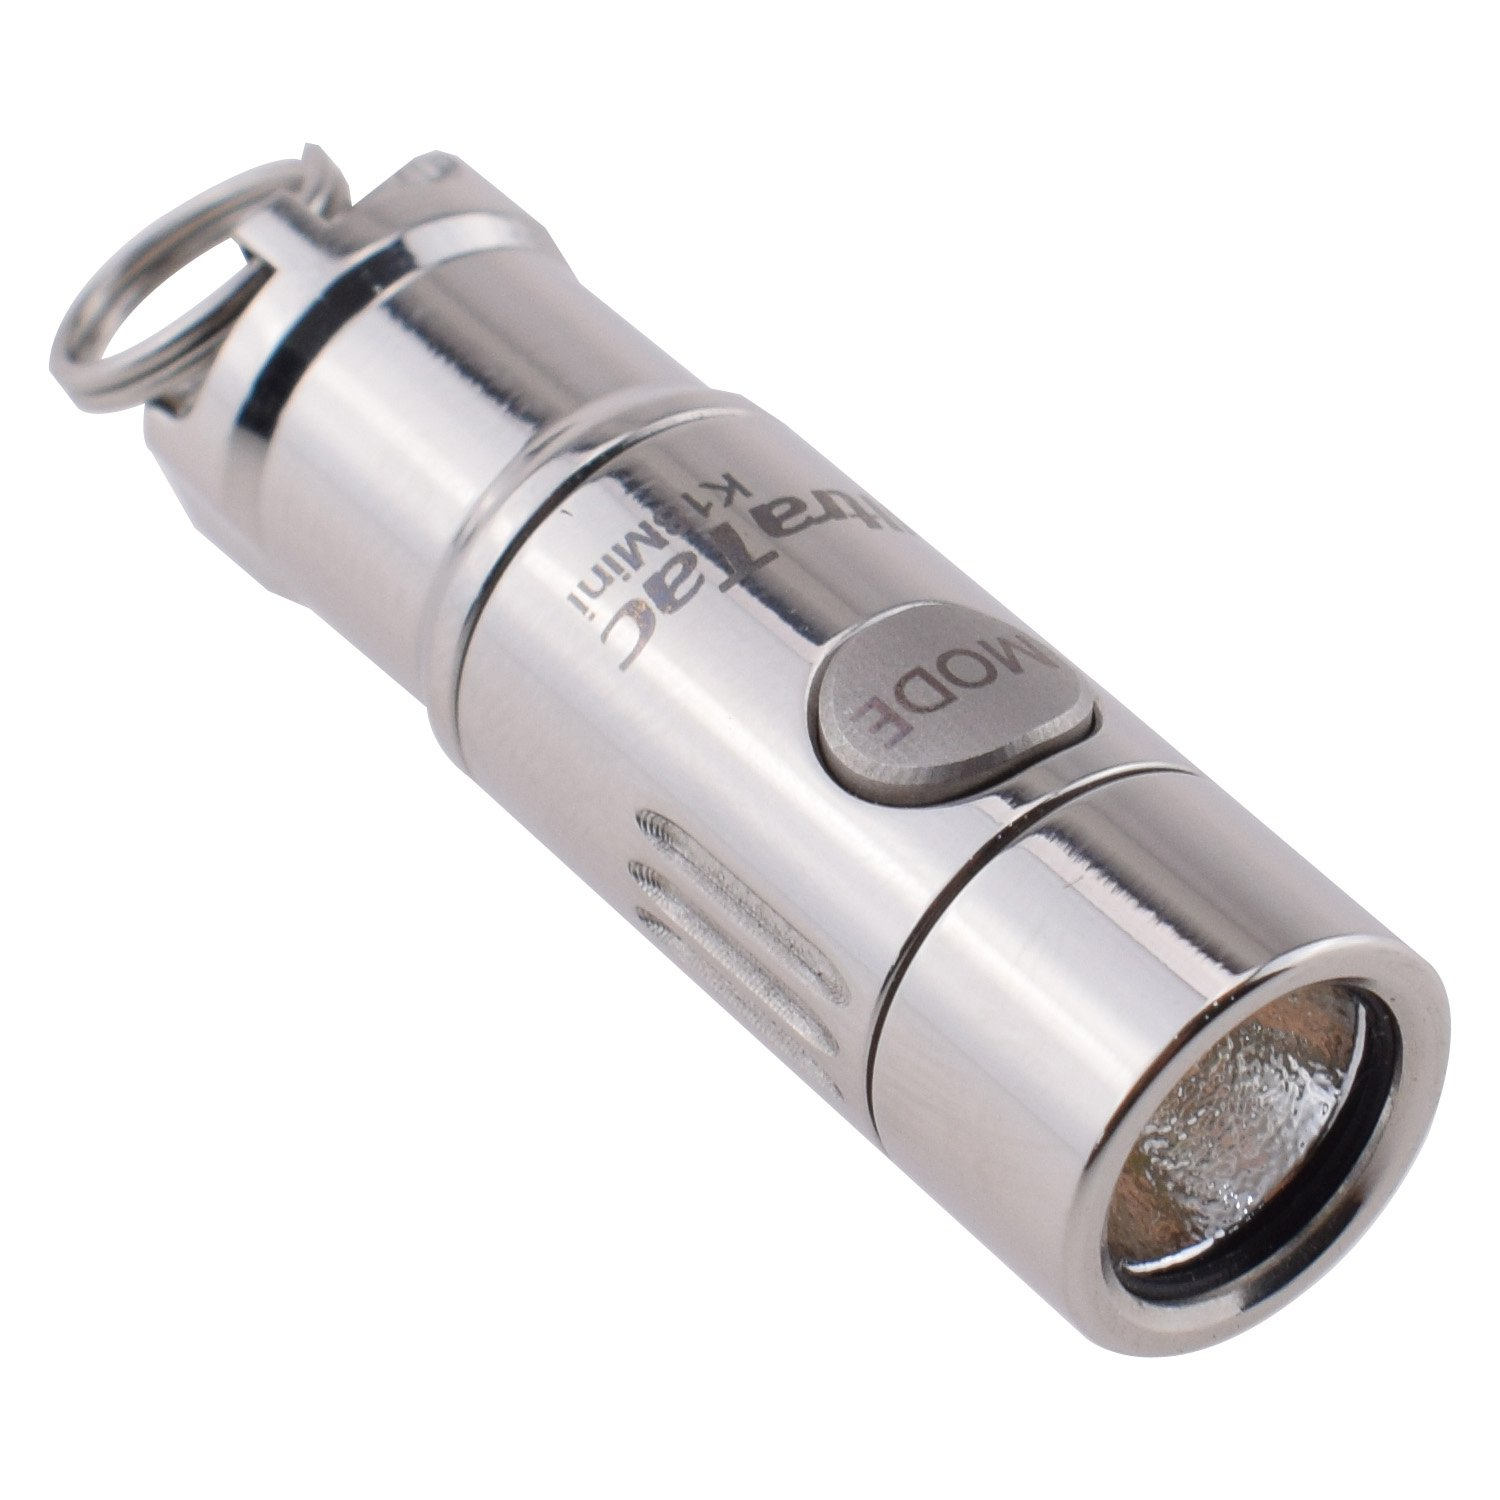 UltraTac K18 Mini Stainless Steel Keychain Flashlight Rechargeable, 130 Lumen Waterproof 2 Light Level + Strobe, Including 10180 Battery and Micro USB Cable